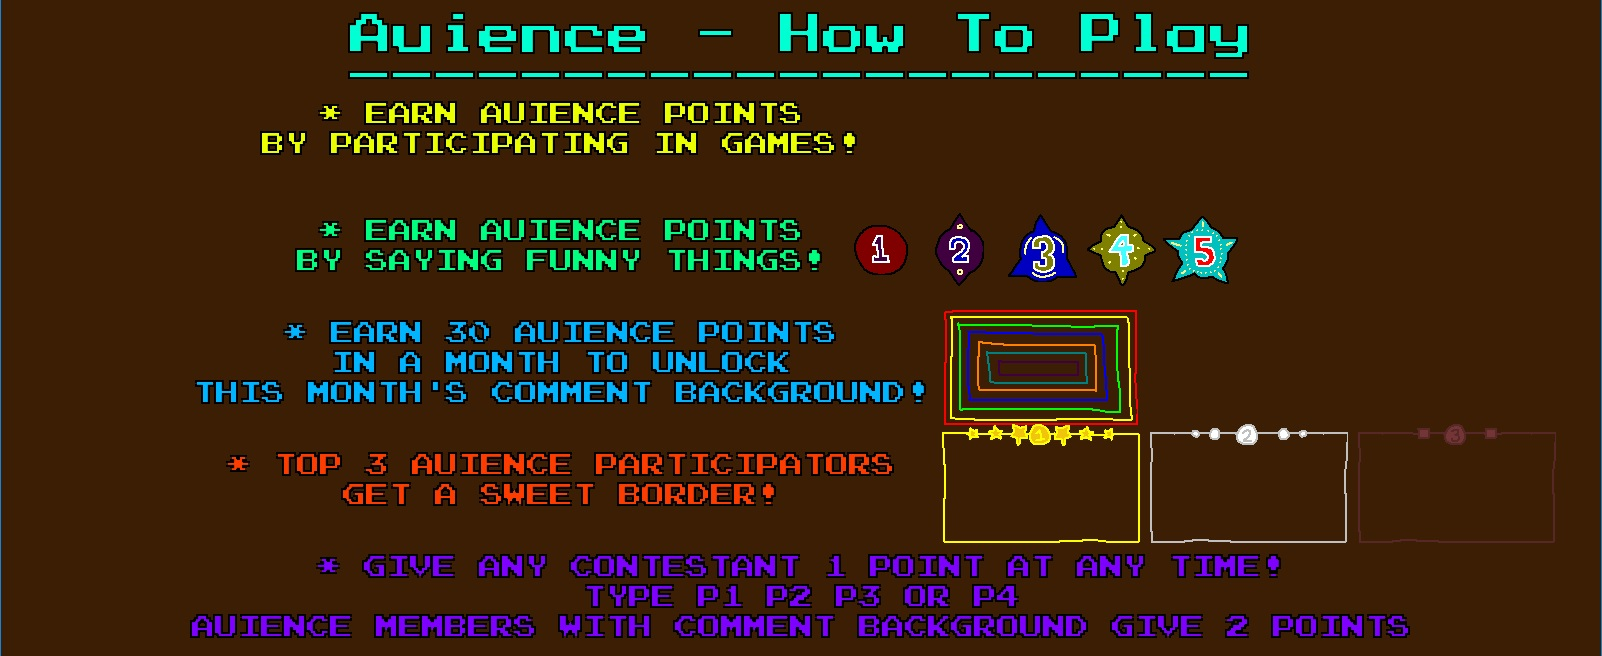 Auience How To Play.jpg